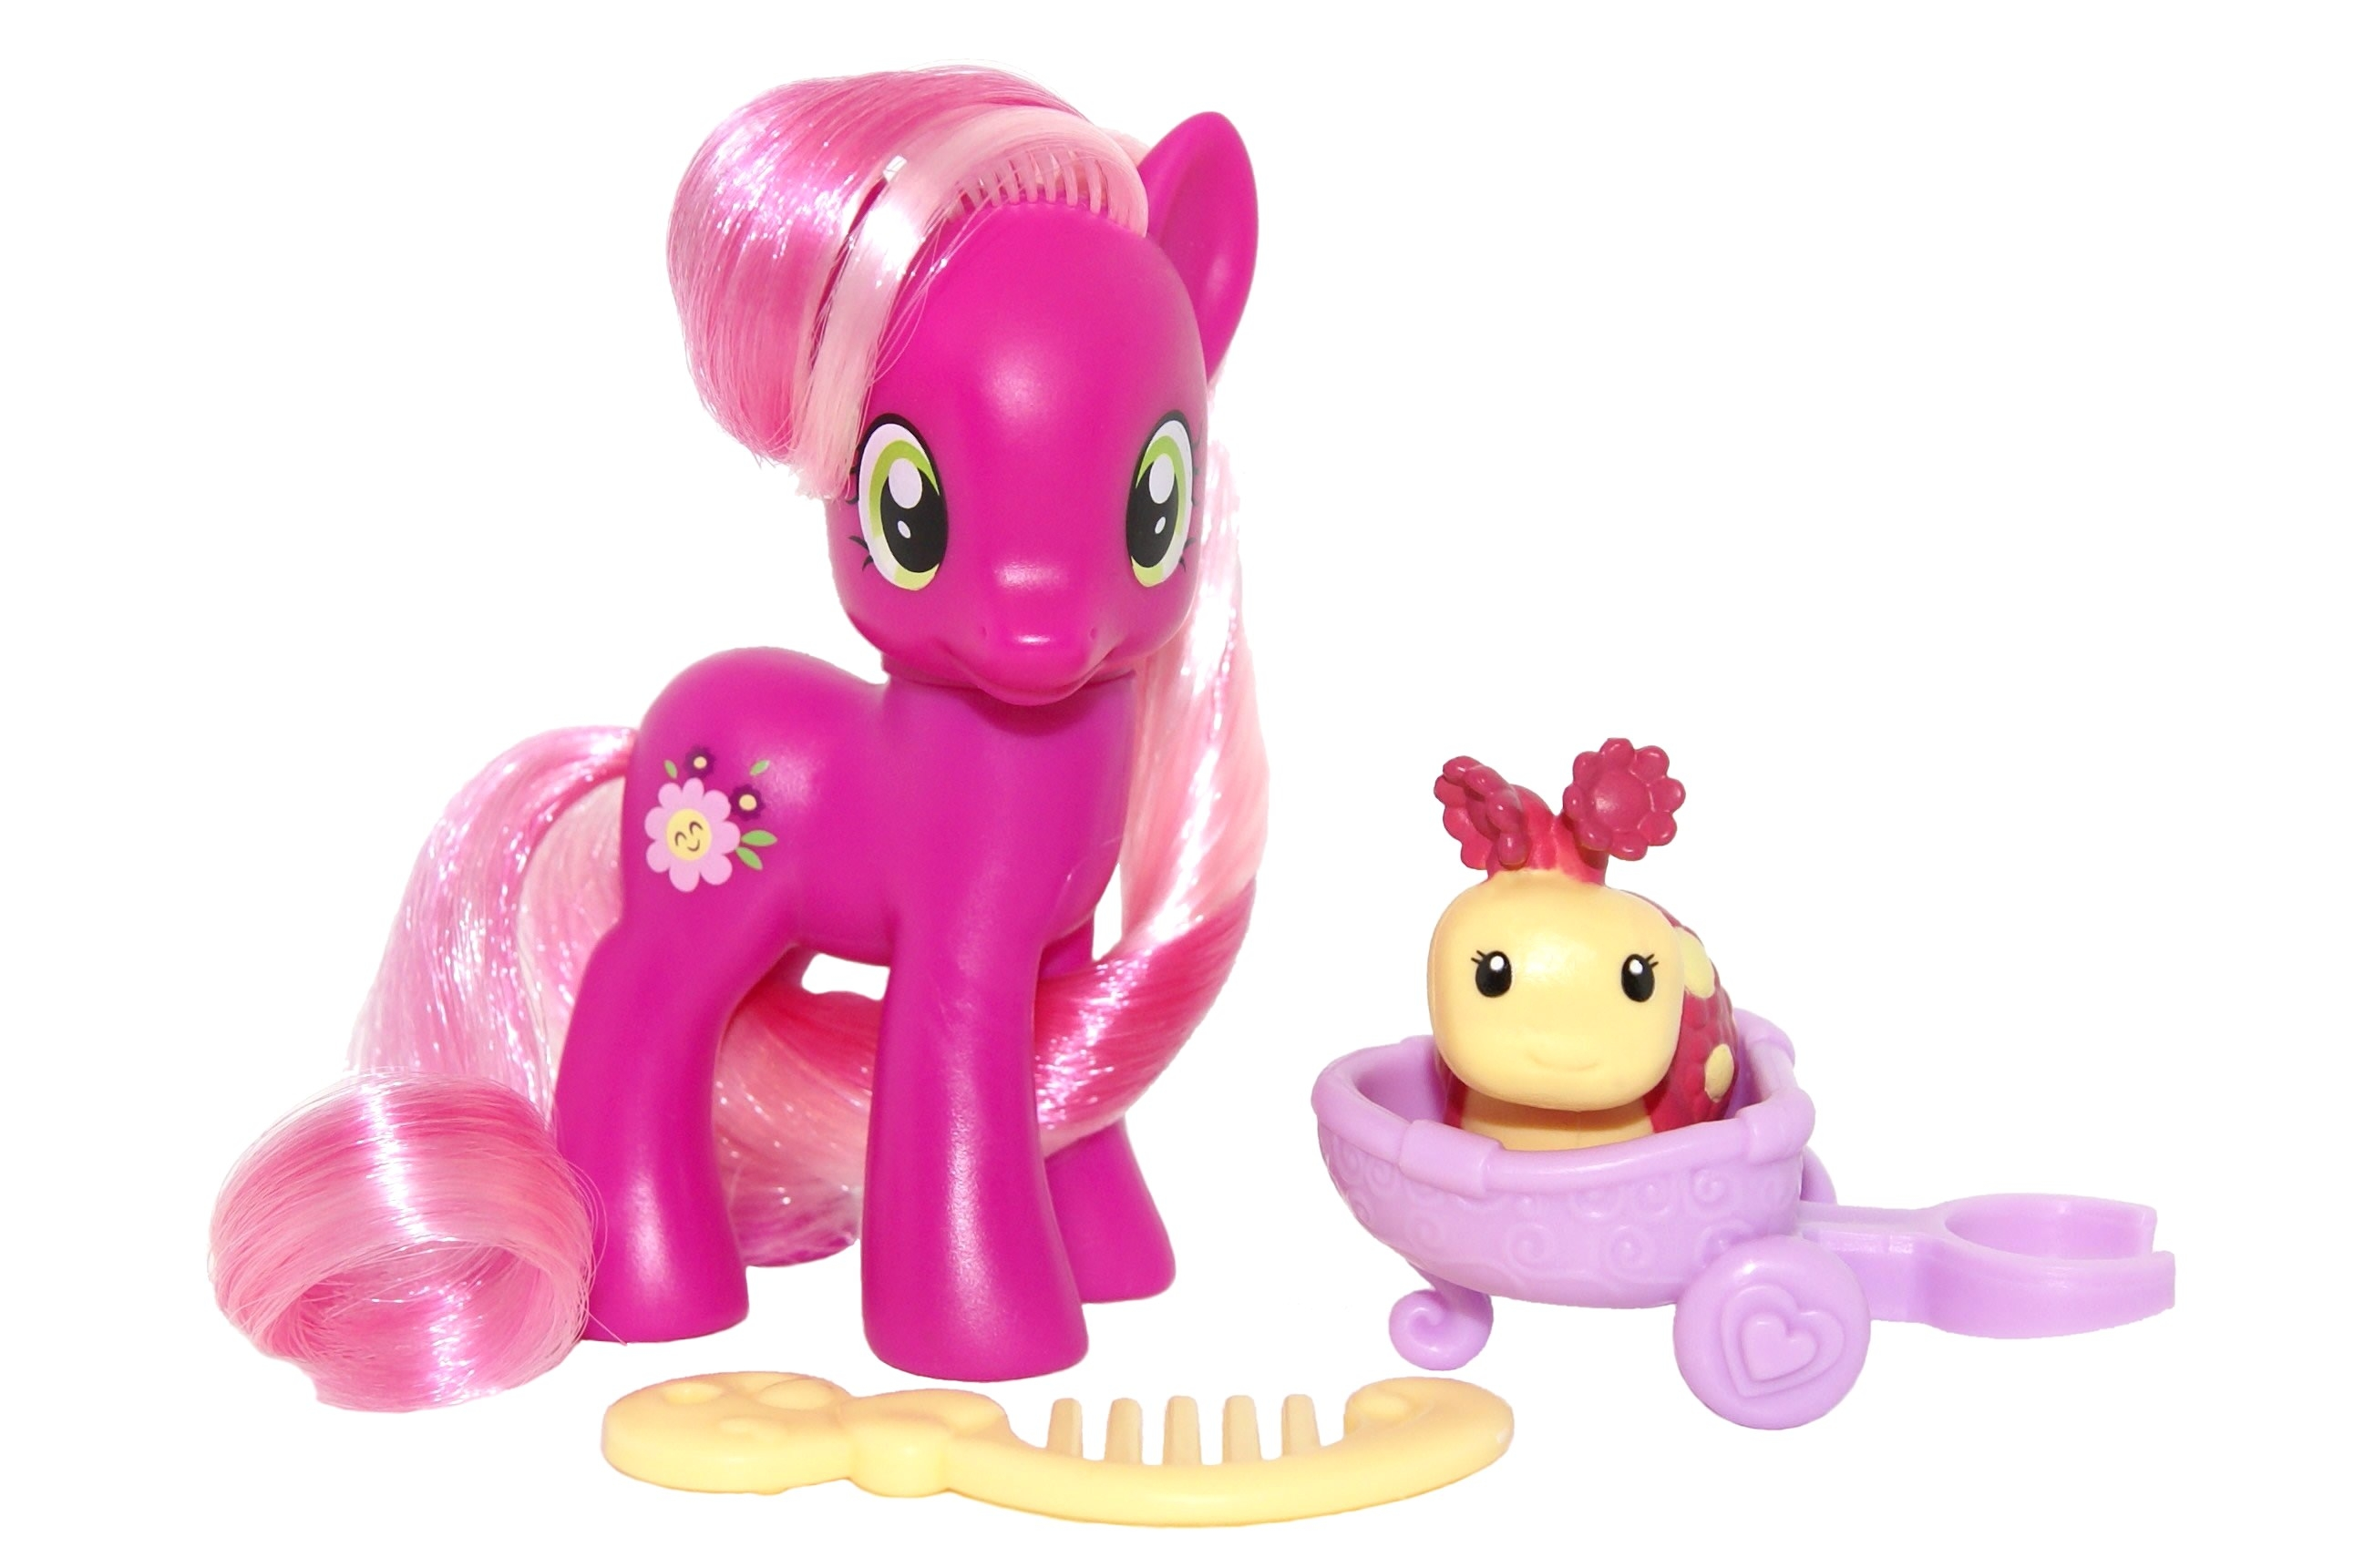 g4 my little pony reference cheerilee friendship is magic